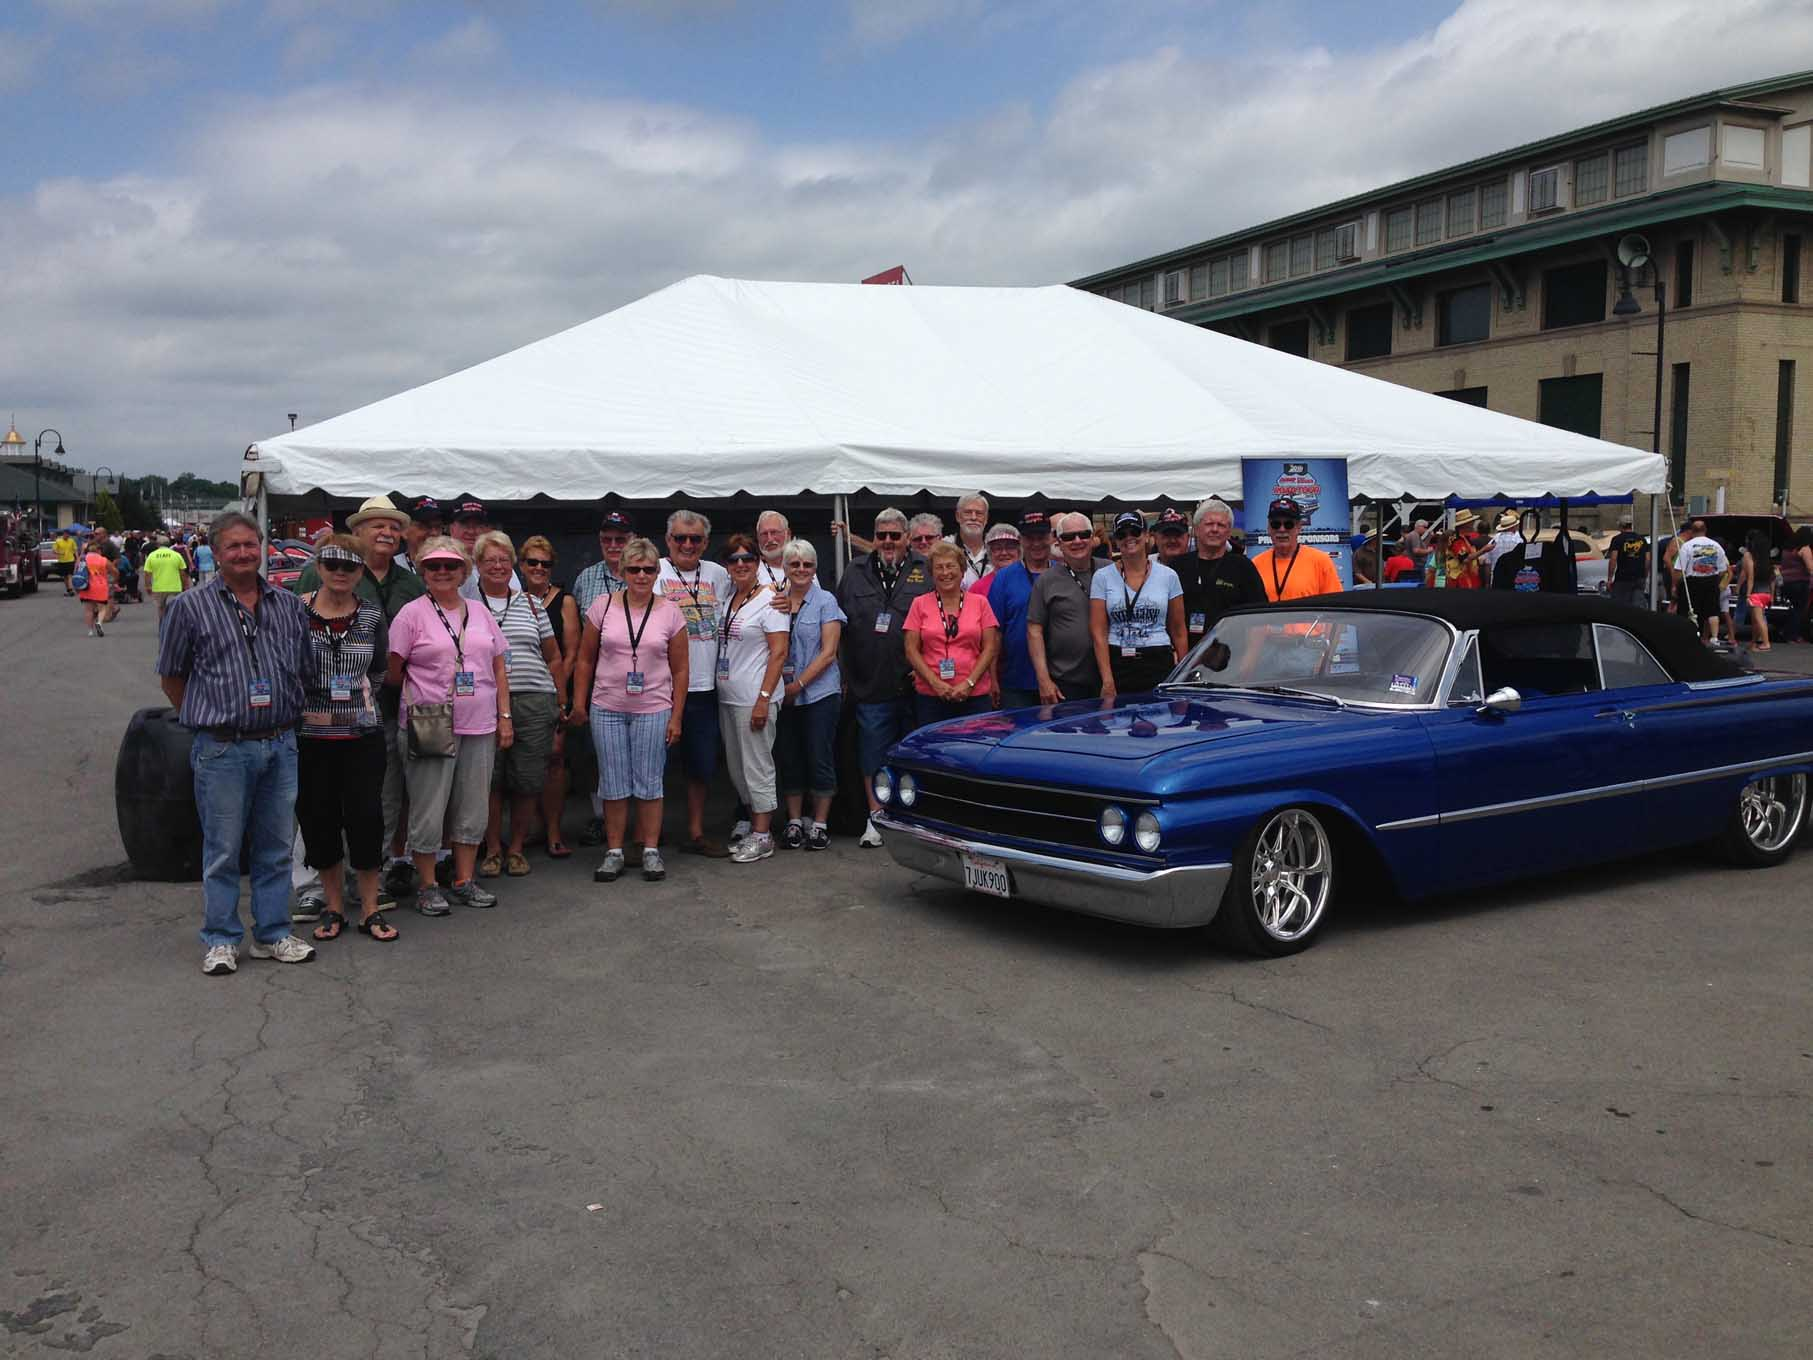 We had a great turnout of folks to participate in the Eastwood Summer Classic Road Tour. We kicked the week off at the Syracuse Nationals. Our ultimate destination for the following weekend was the Eastwood Summer Classic in Pottstown, PA.